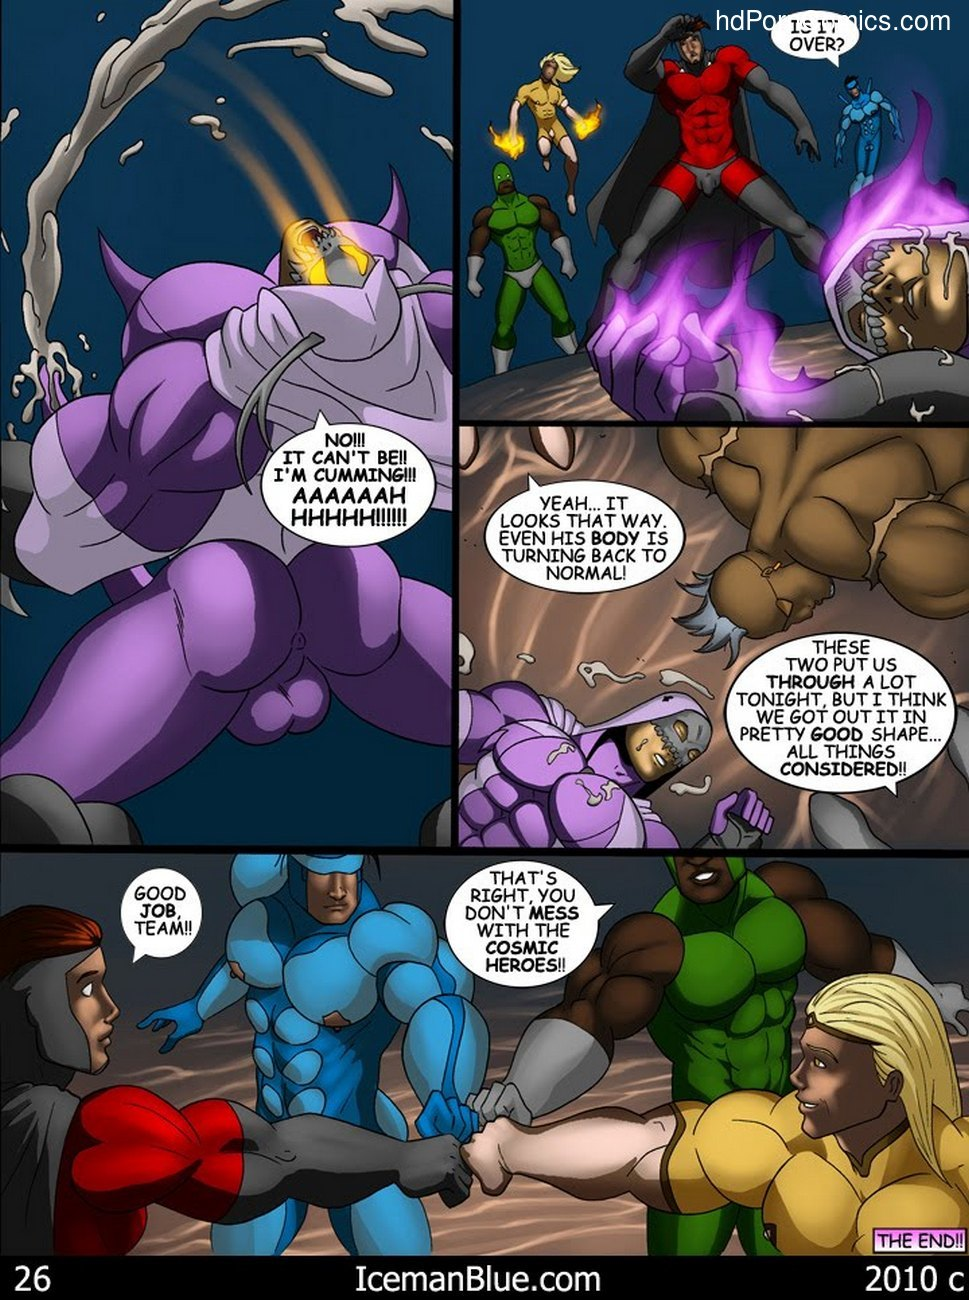 Cosmic Heroes 1 Sex Comic